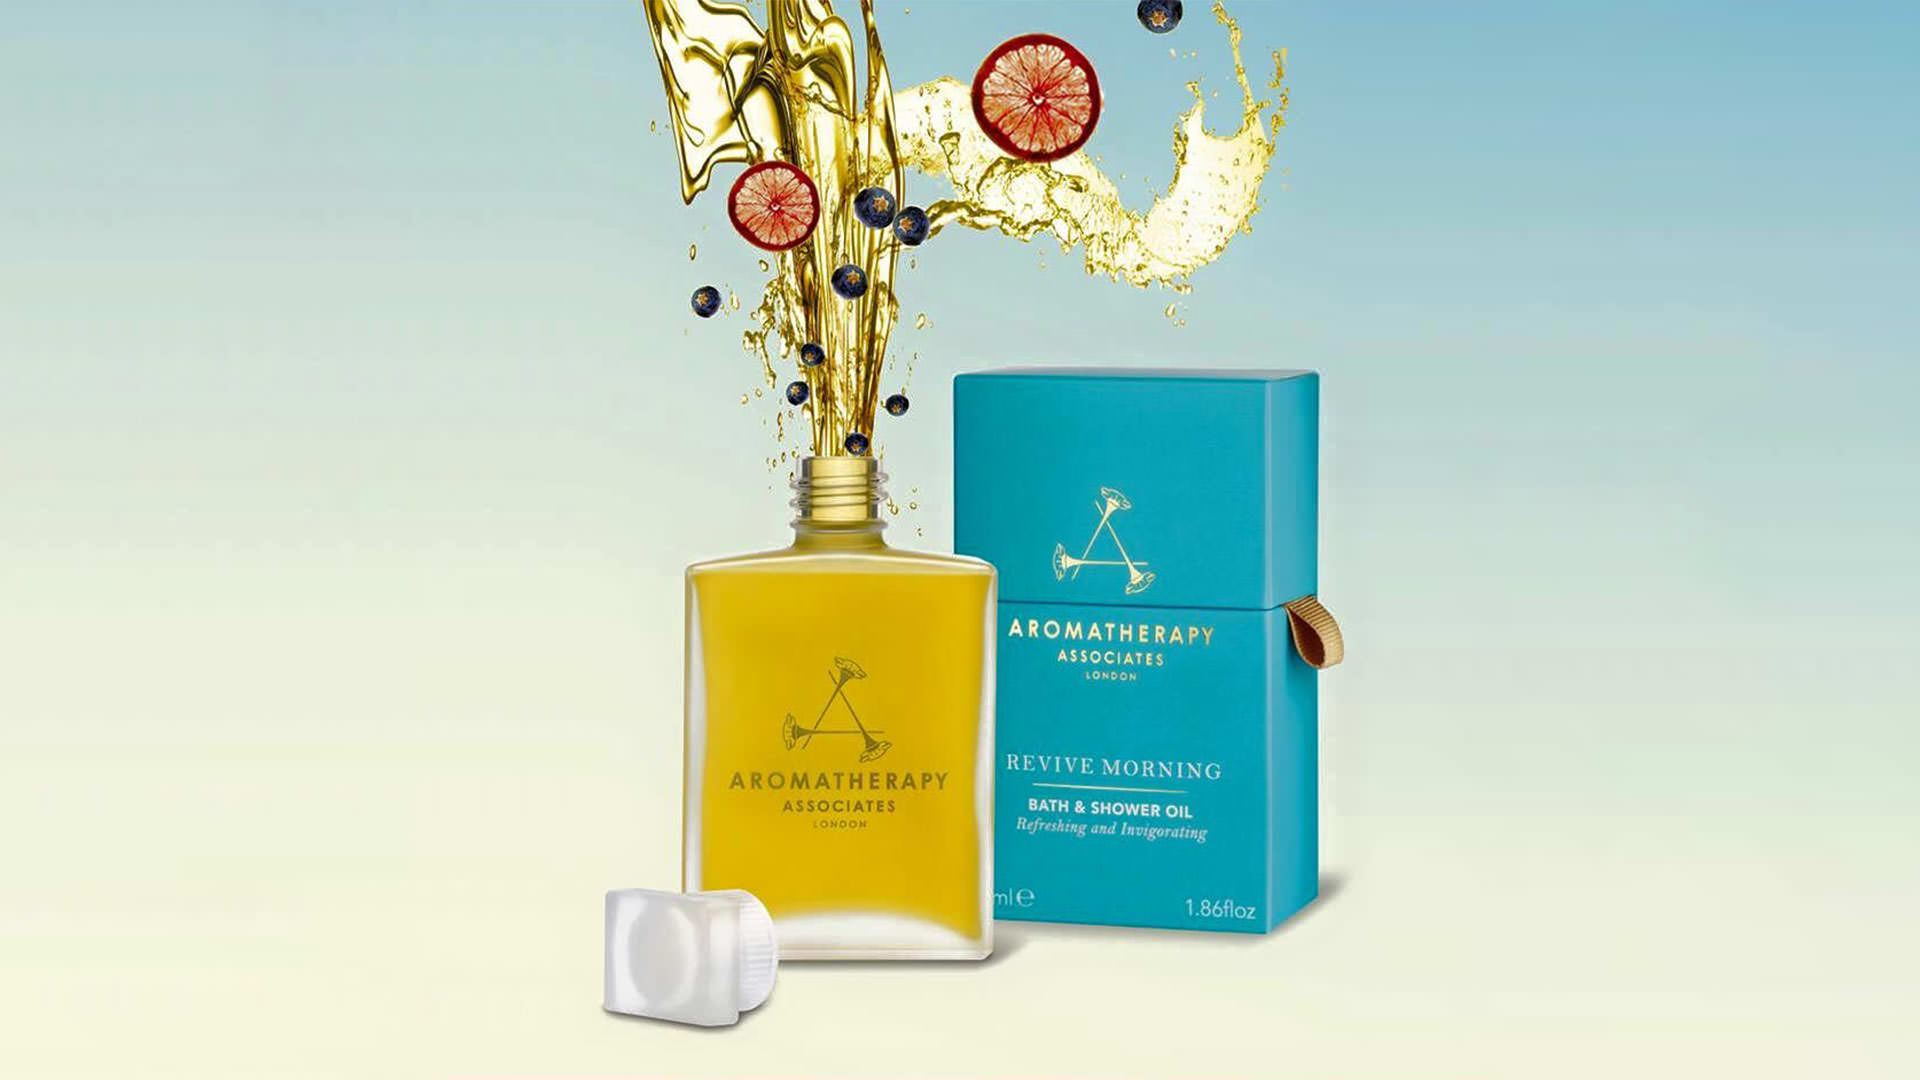 Aromatherapy Associates at Maison Talbooth